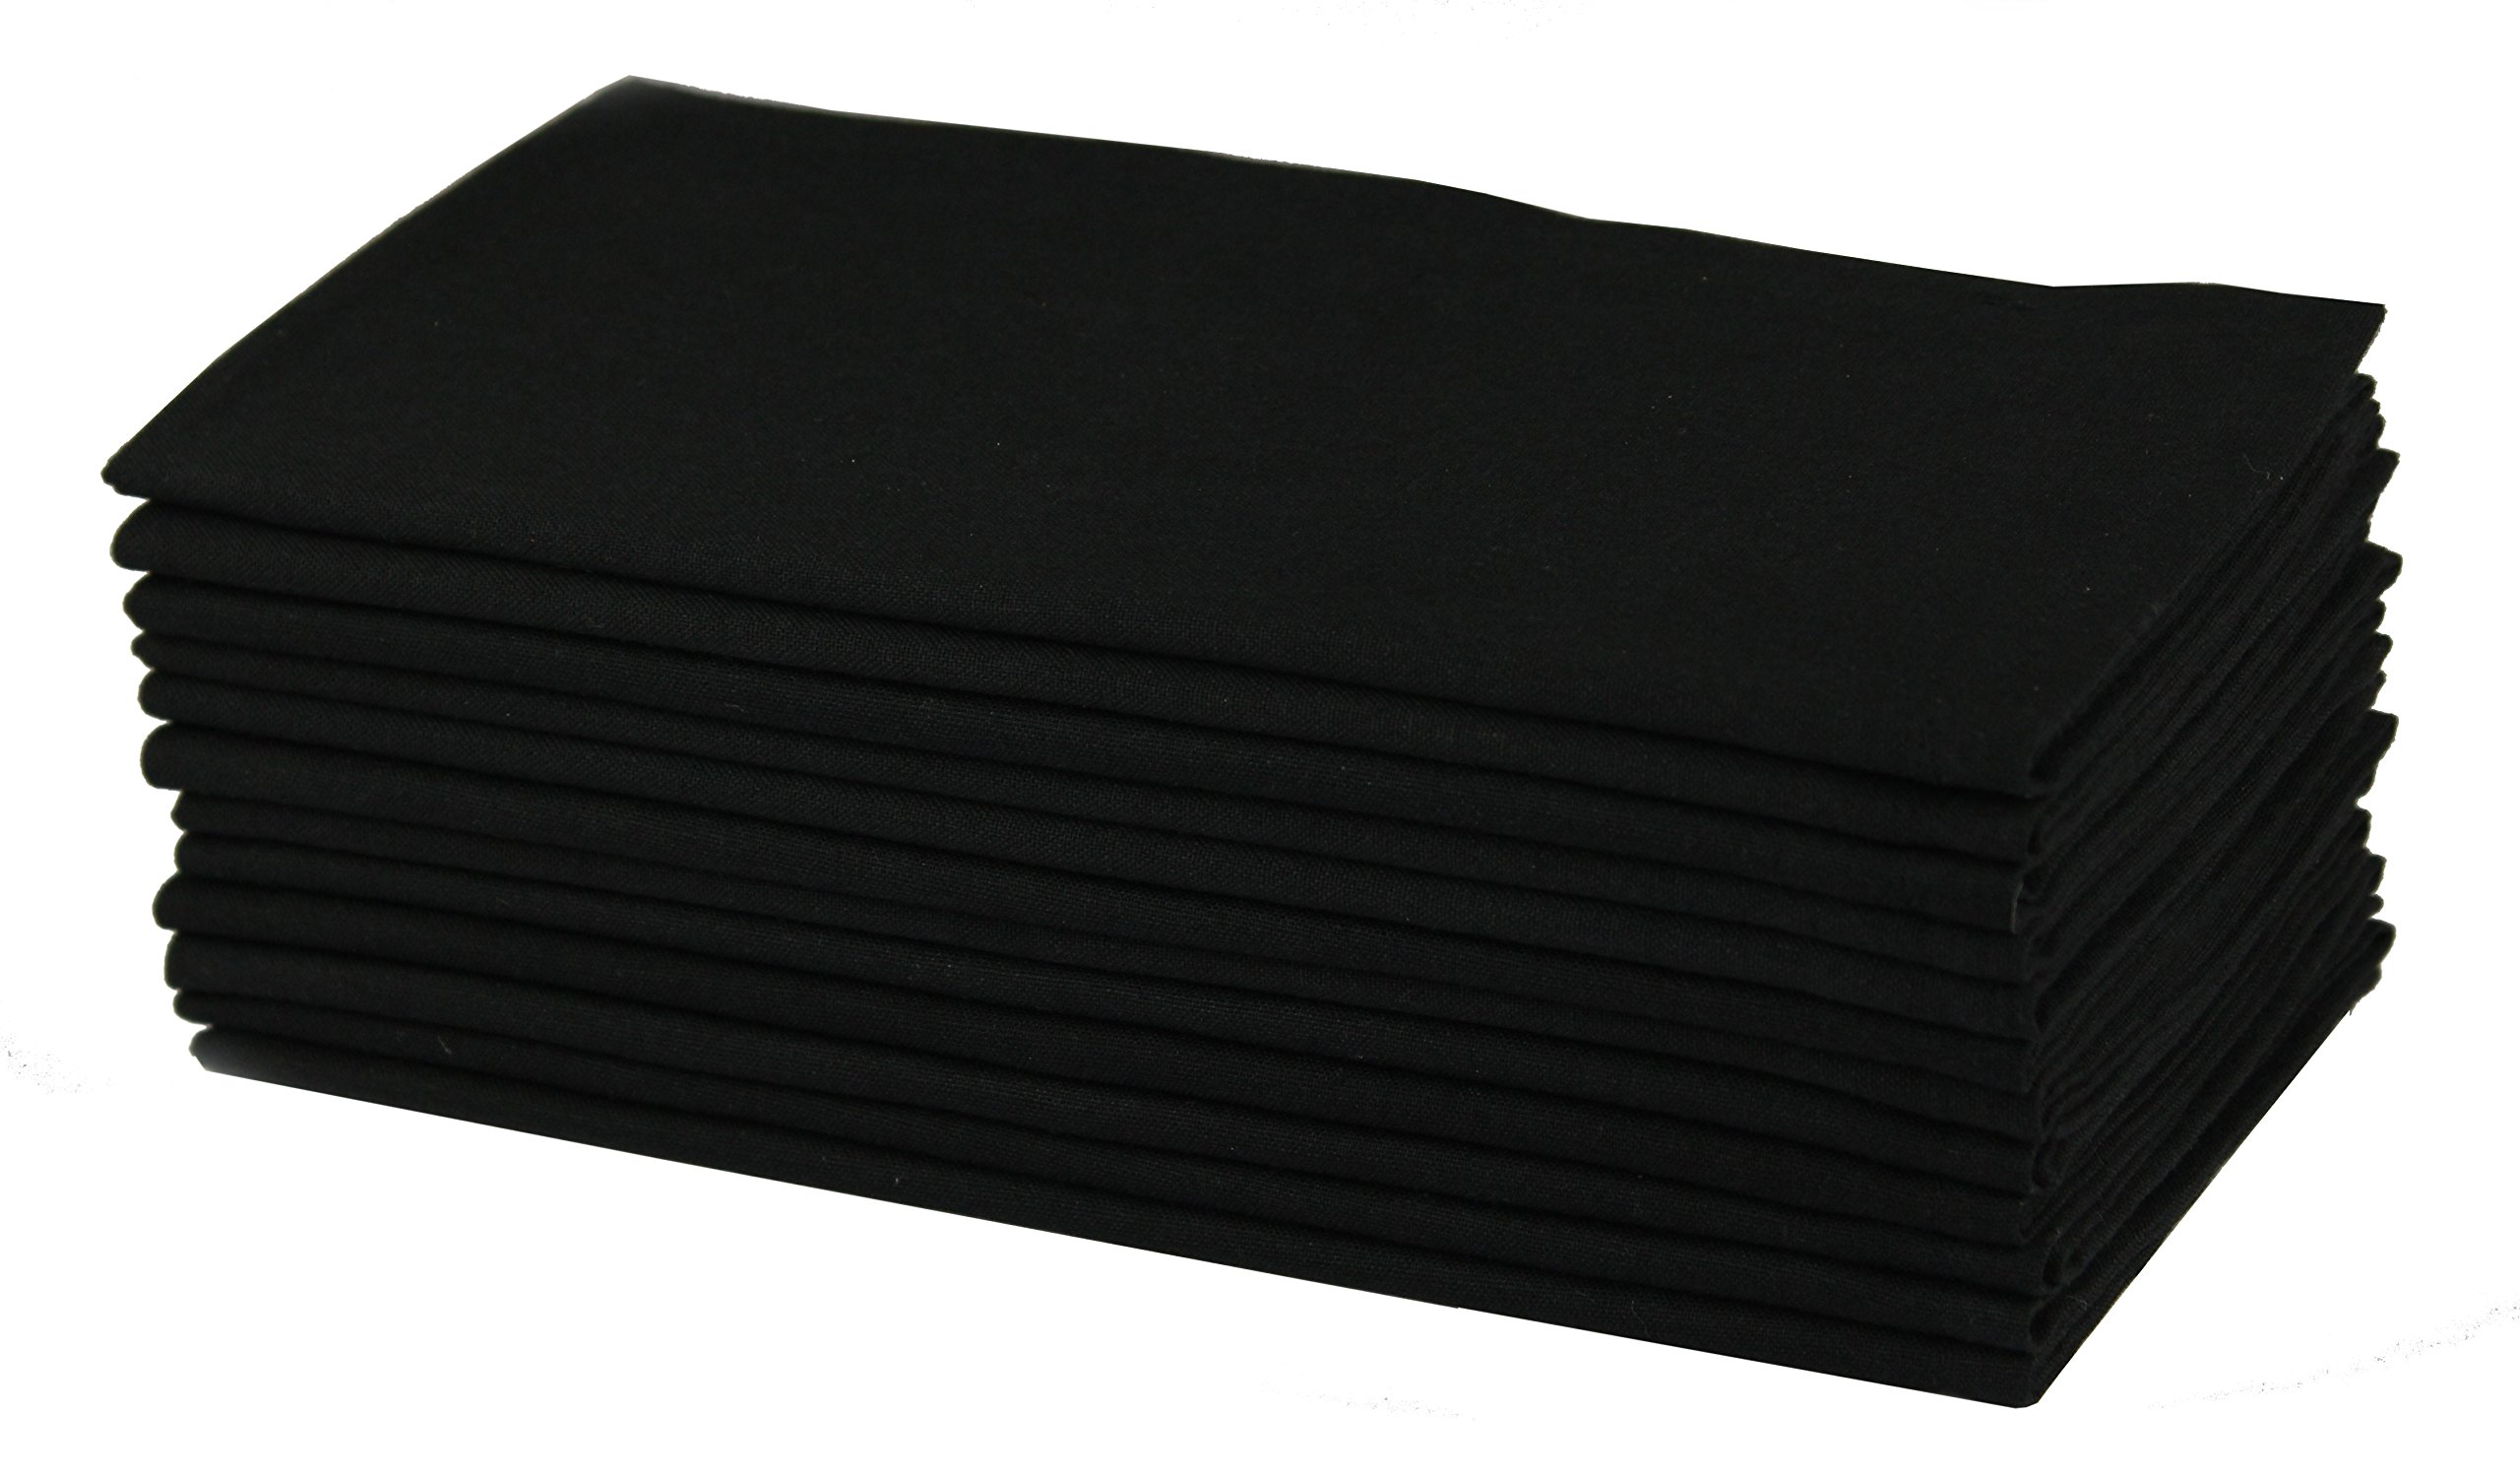 Cotton Craft Napkins, 12 Pack Oversized Dinner Napkins 20x20 Black, 100% Cotton, Tailored with Mitered corners and a generous hem, Napkins are 38% larger than standard size napkins